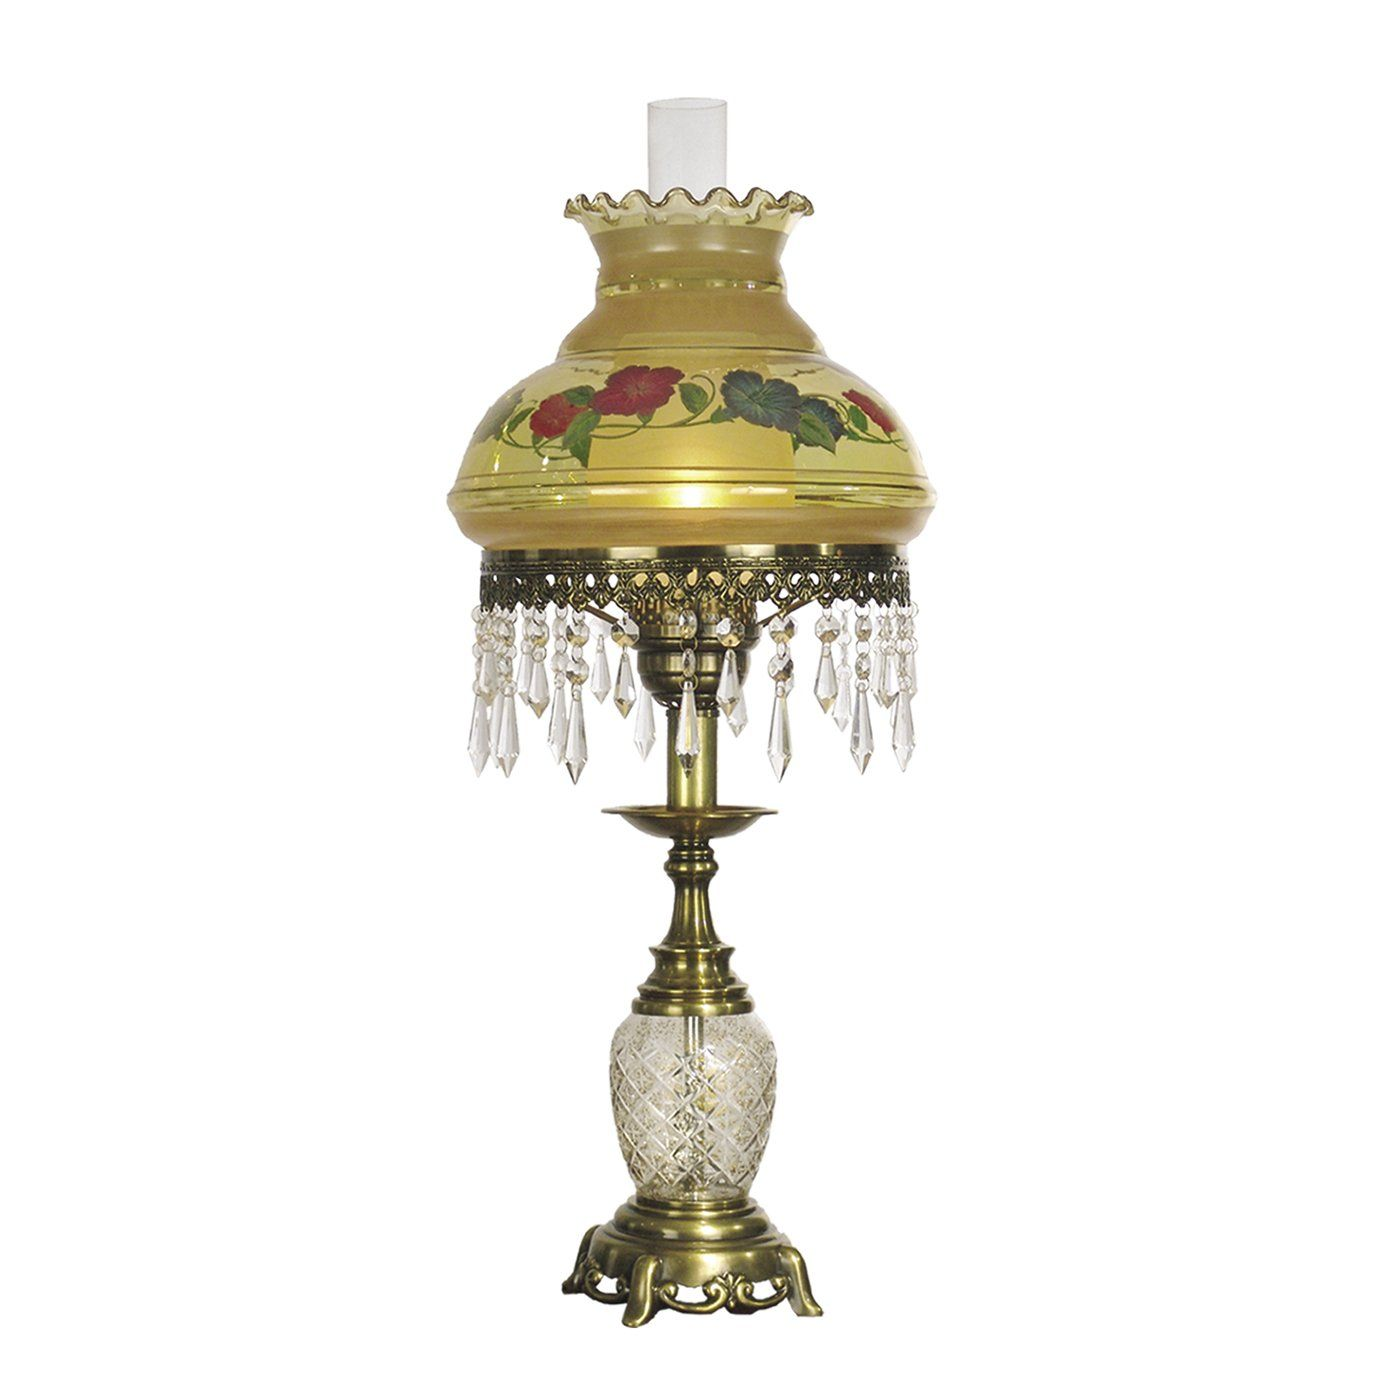 Antique hurricane lamps antique brass hurricane table lamp antique hurricane lamps antique brass hurricane table lamp aloadofball Gallery